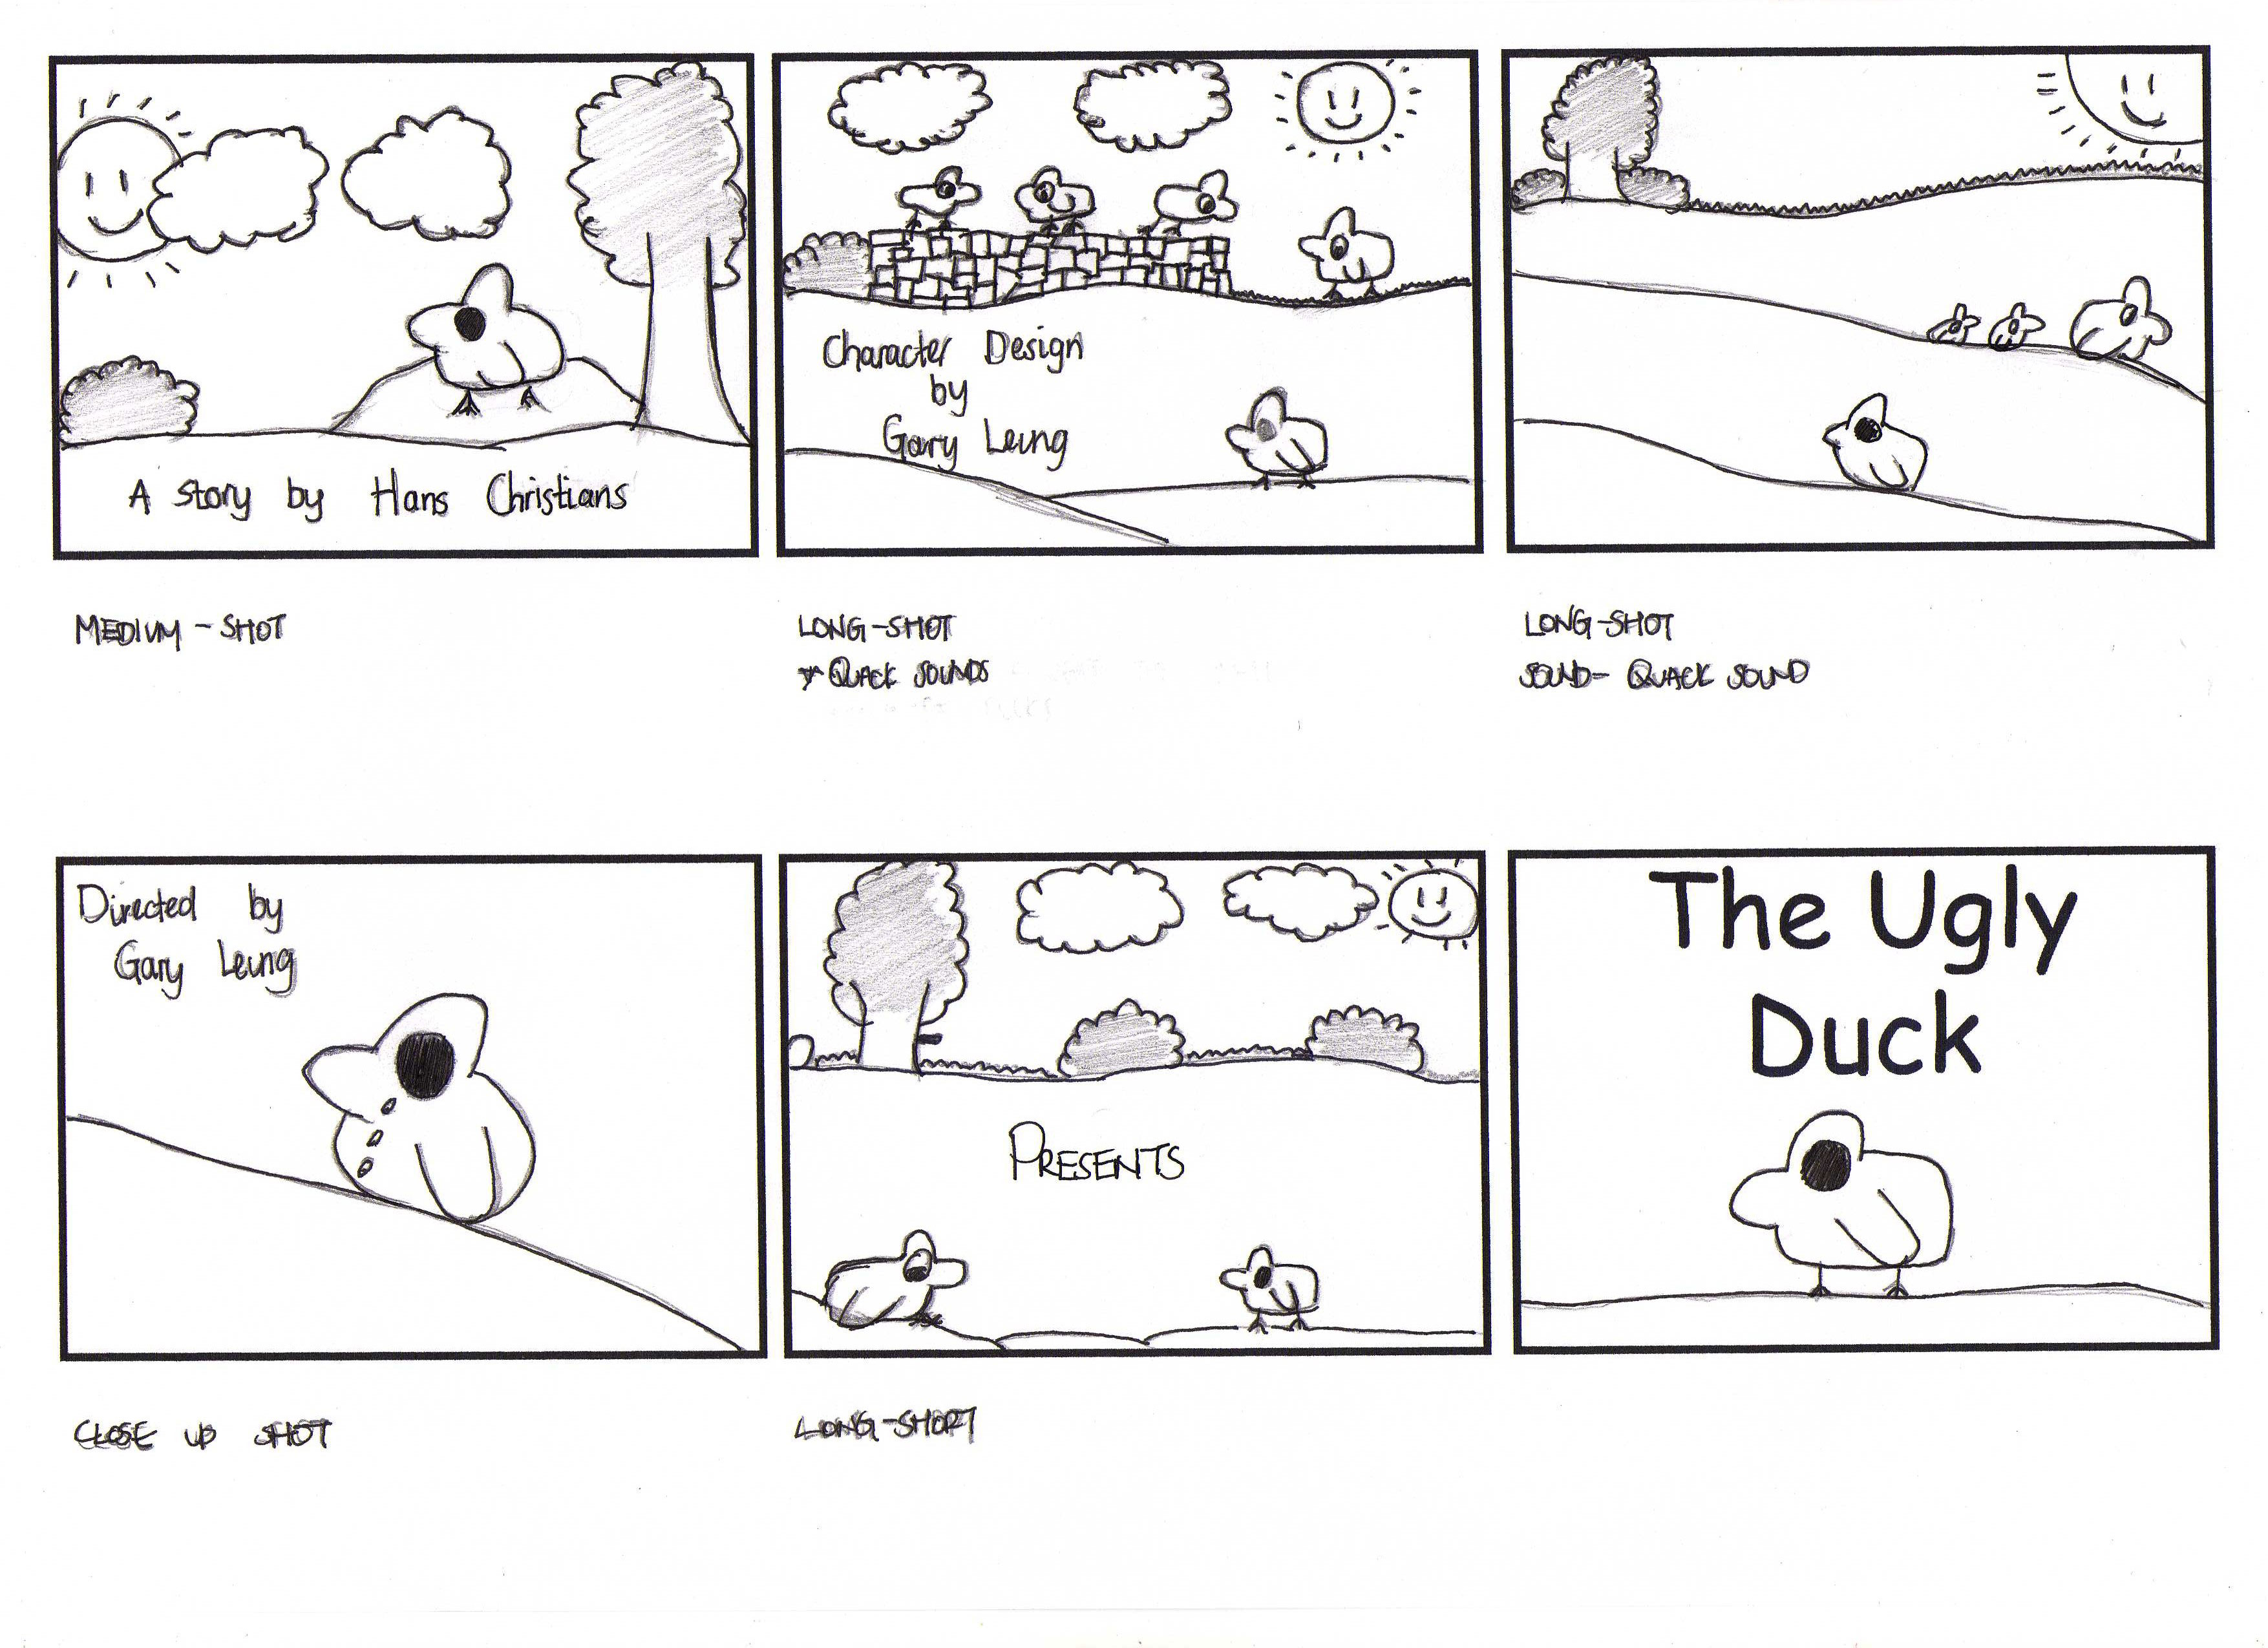 The Ugly Duck Storyboard